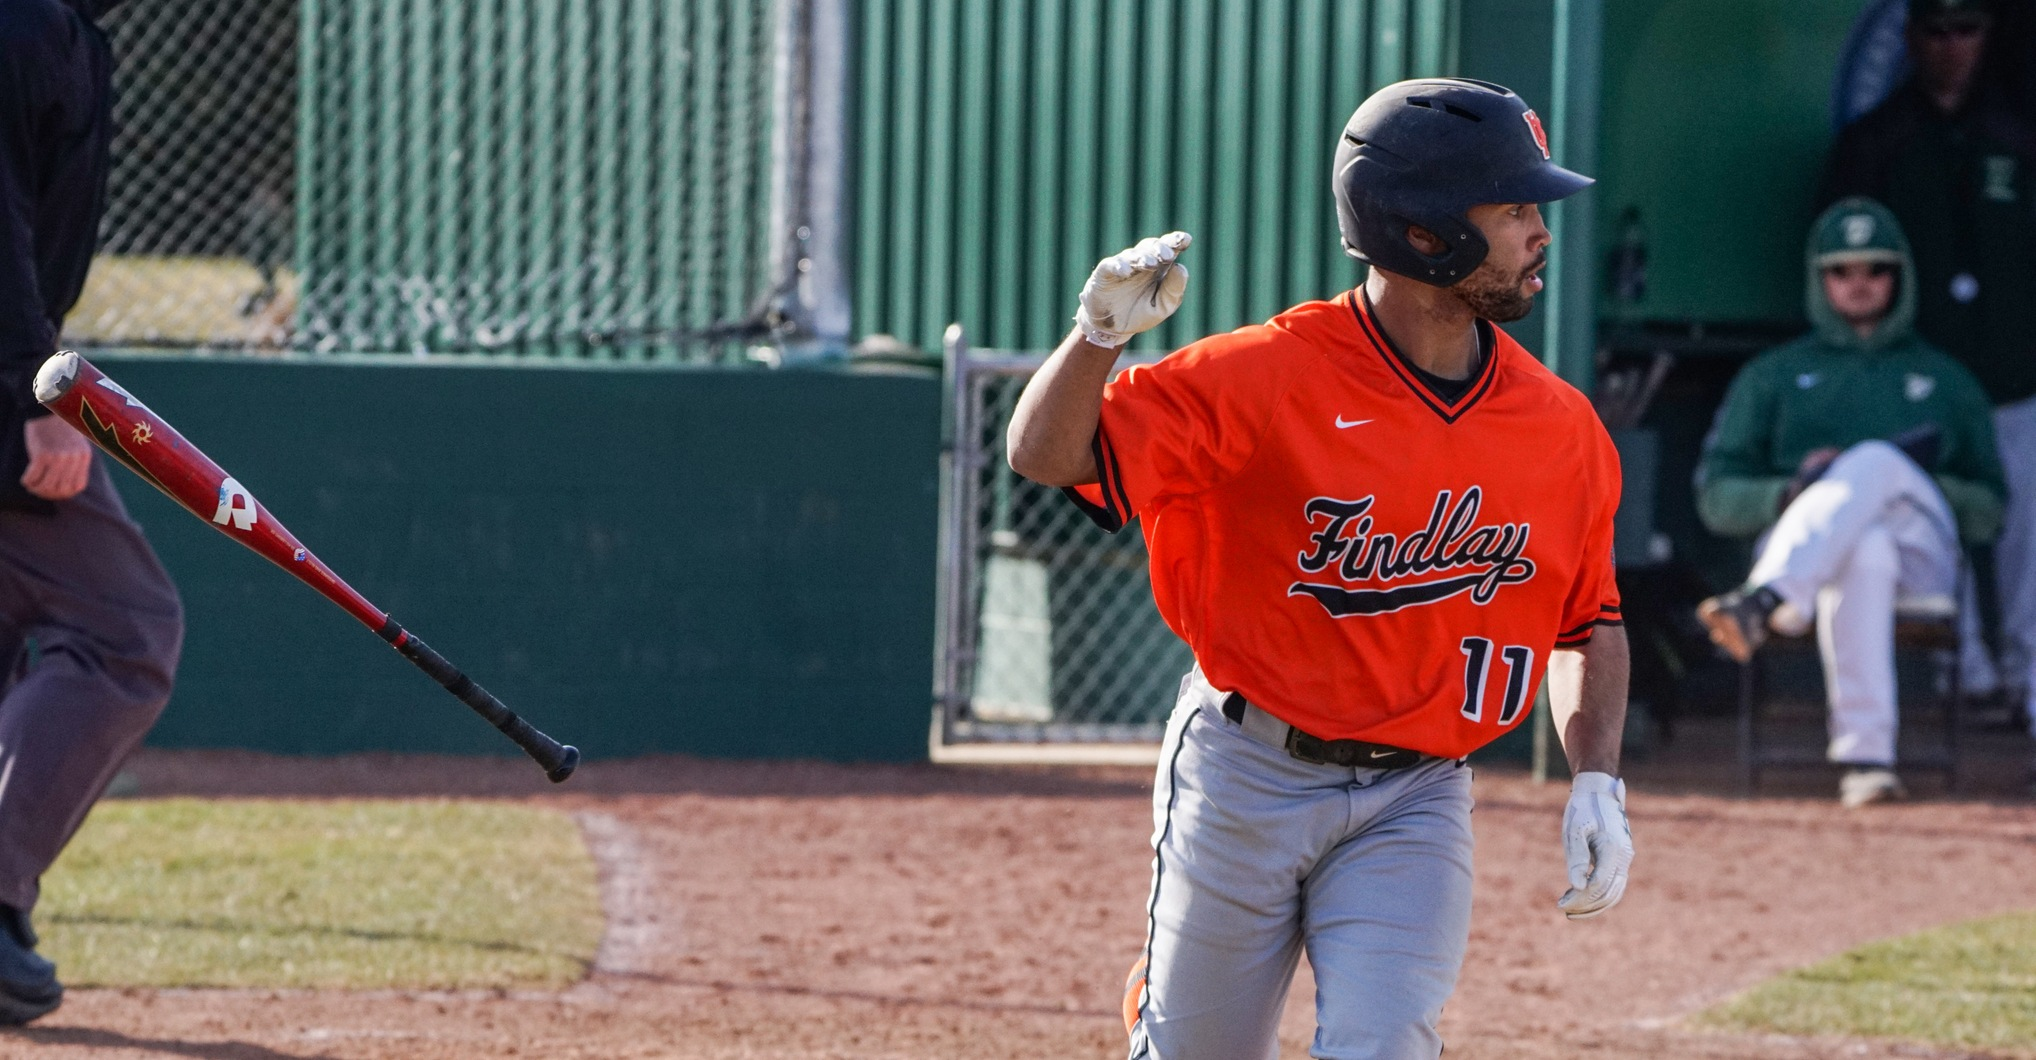 Findlay Splits at Tiffin Behind Foulks' Homeruns